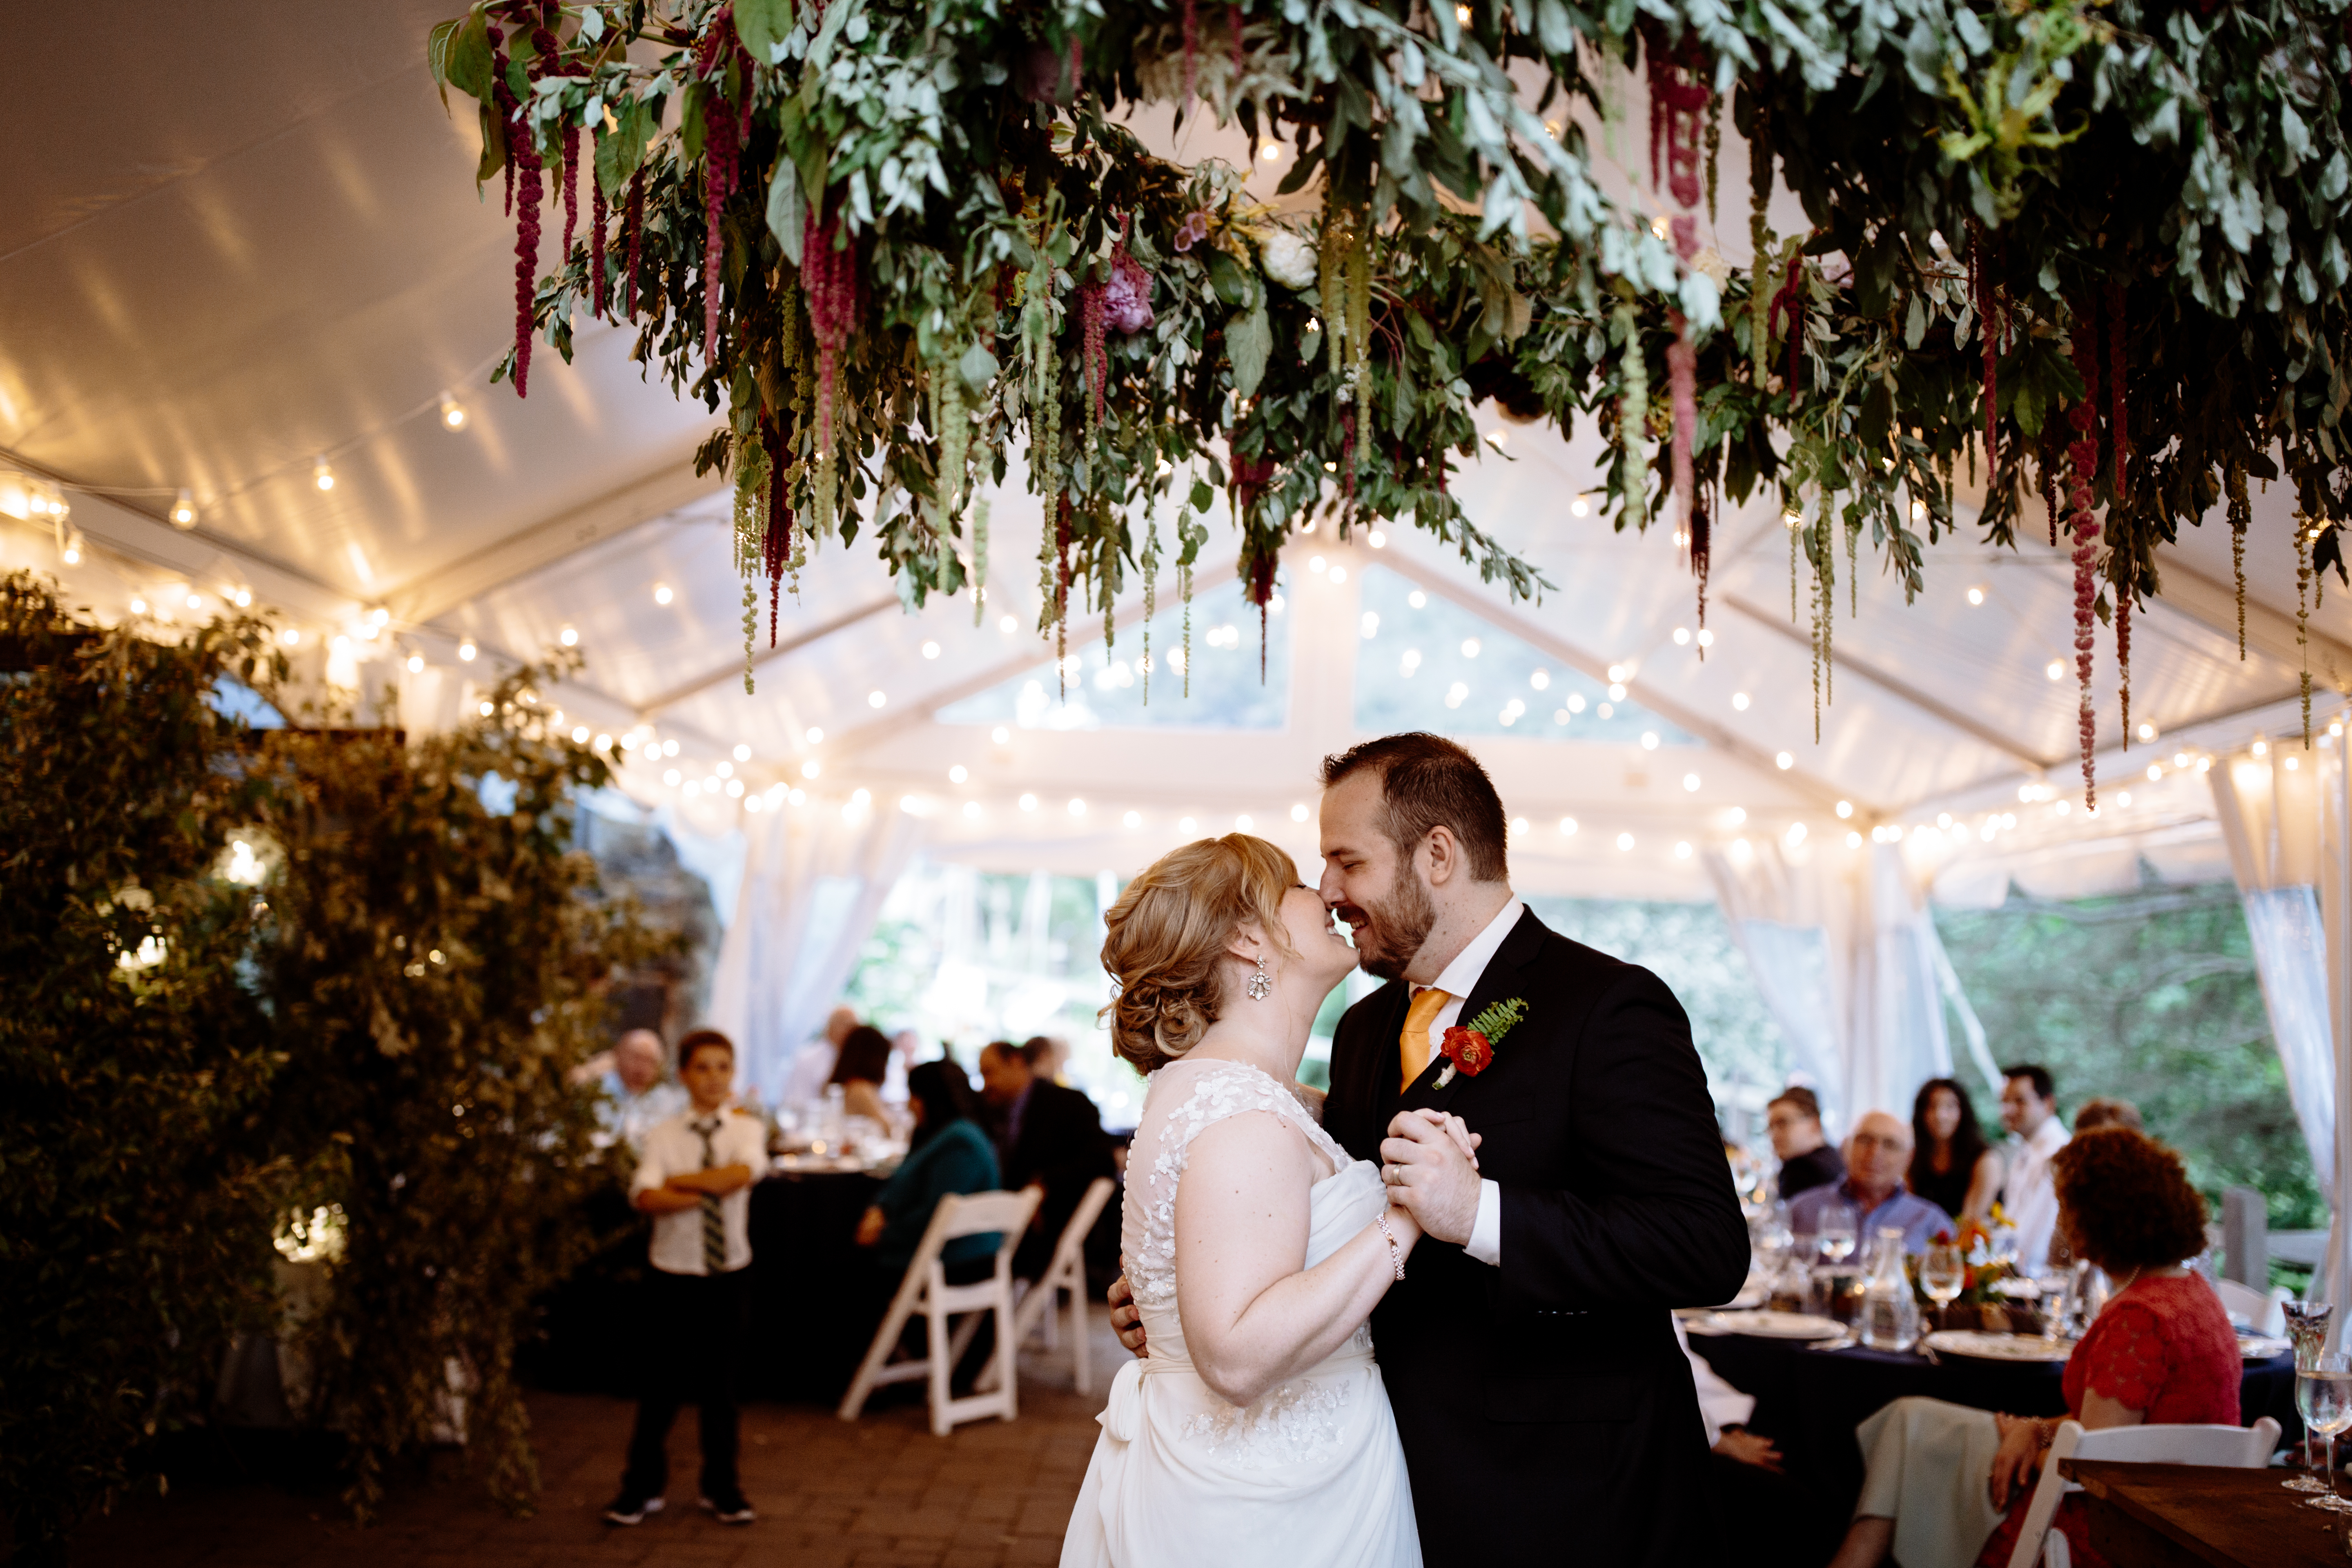 McMullenTaylorWed050416-676